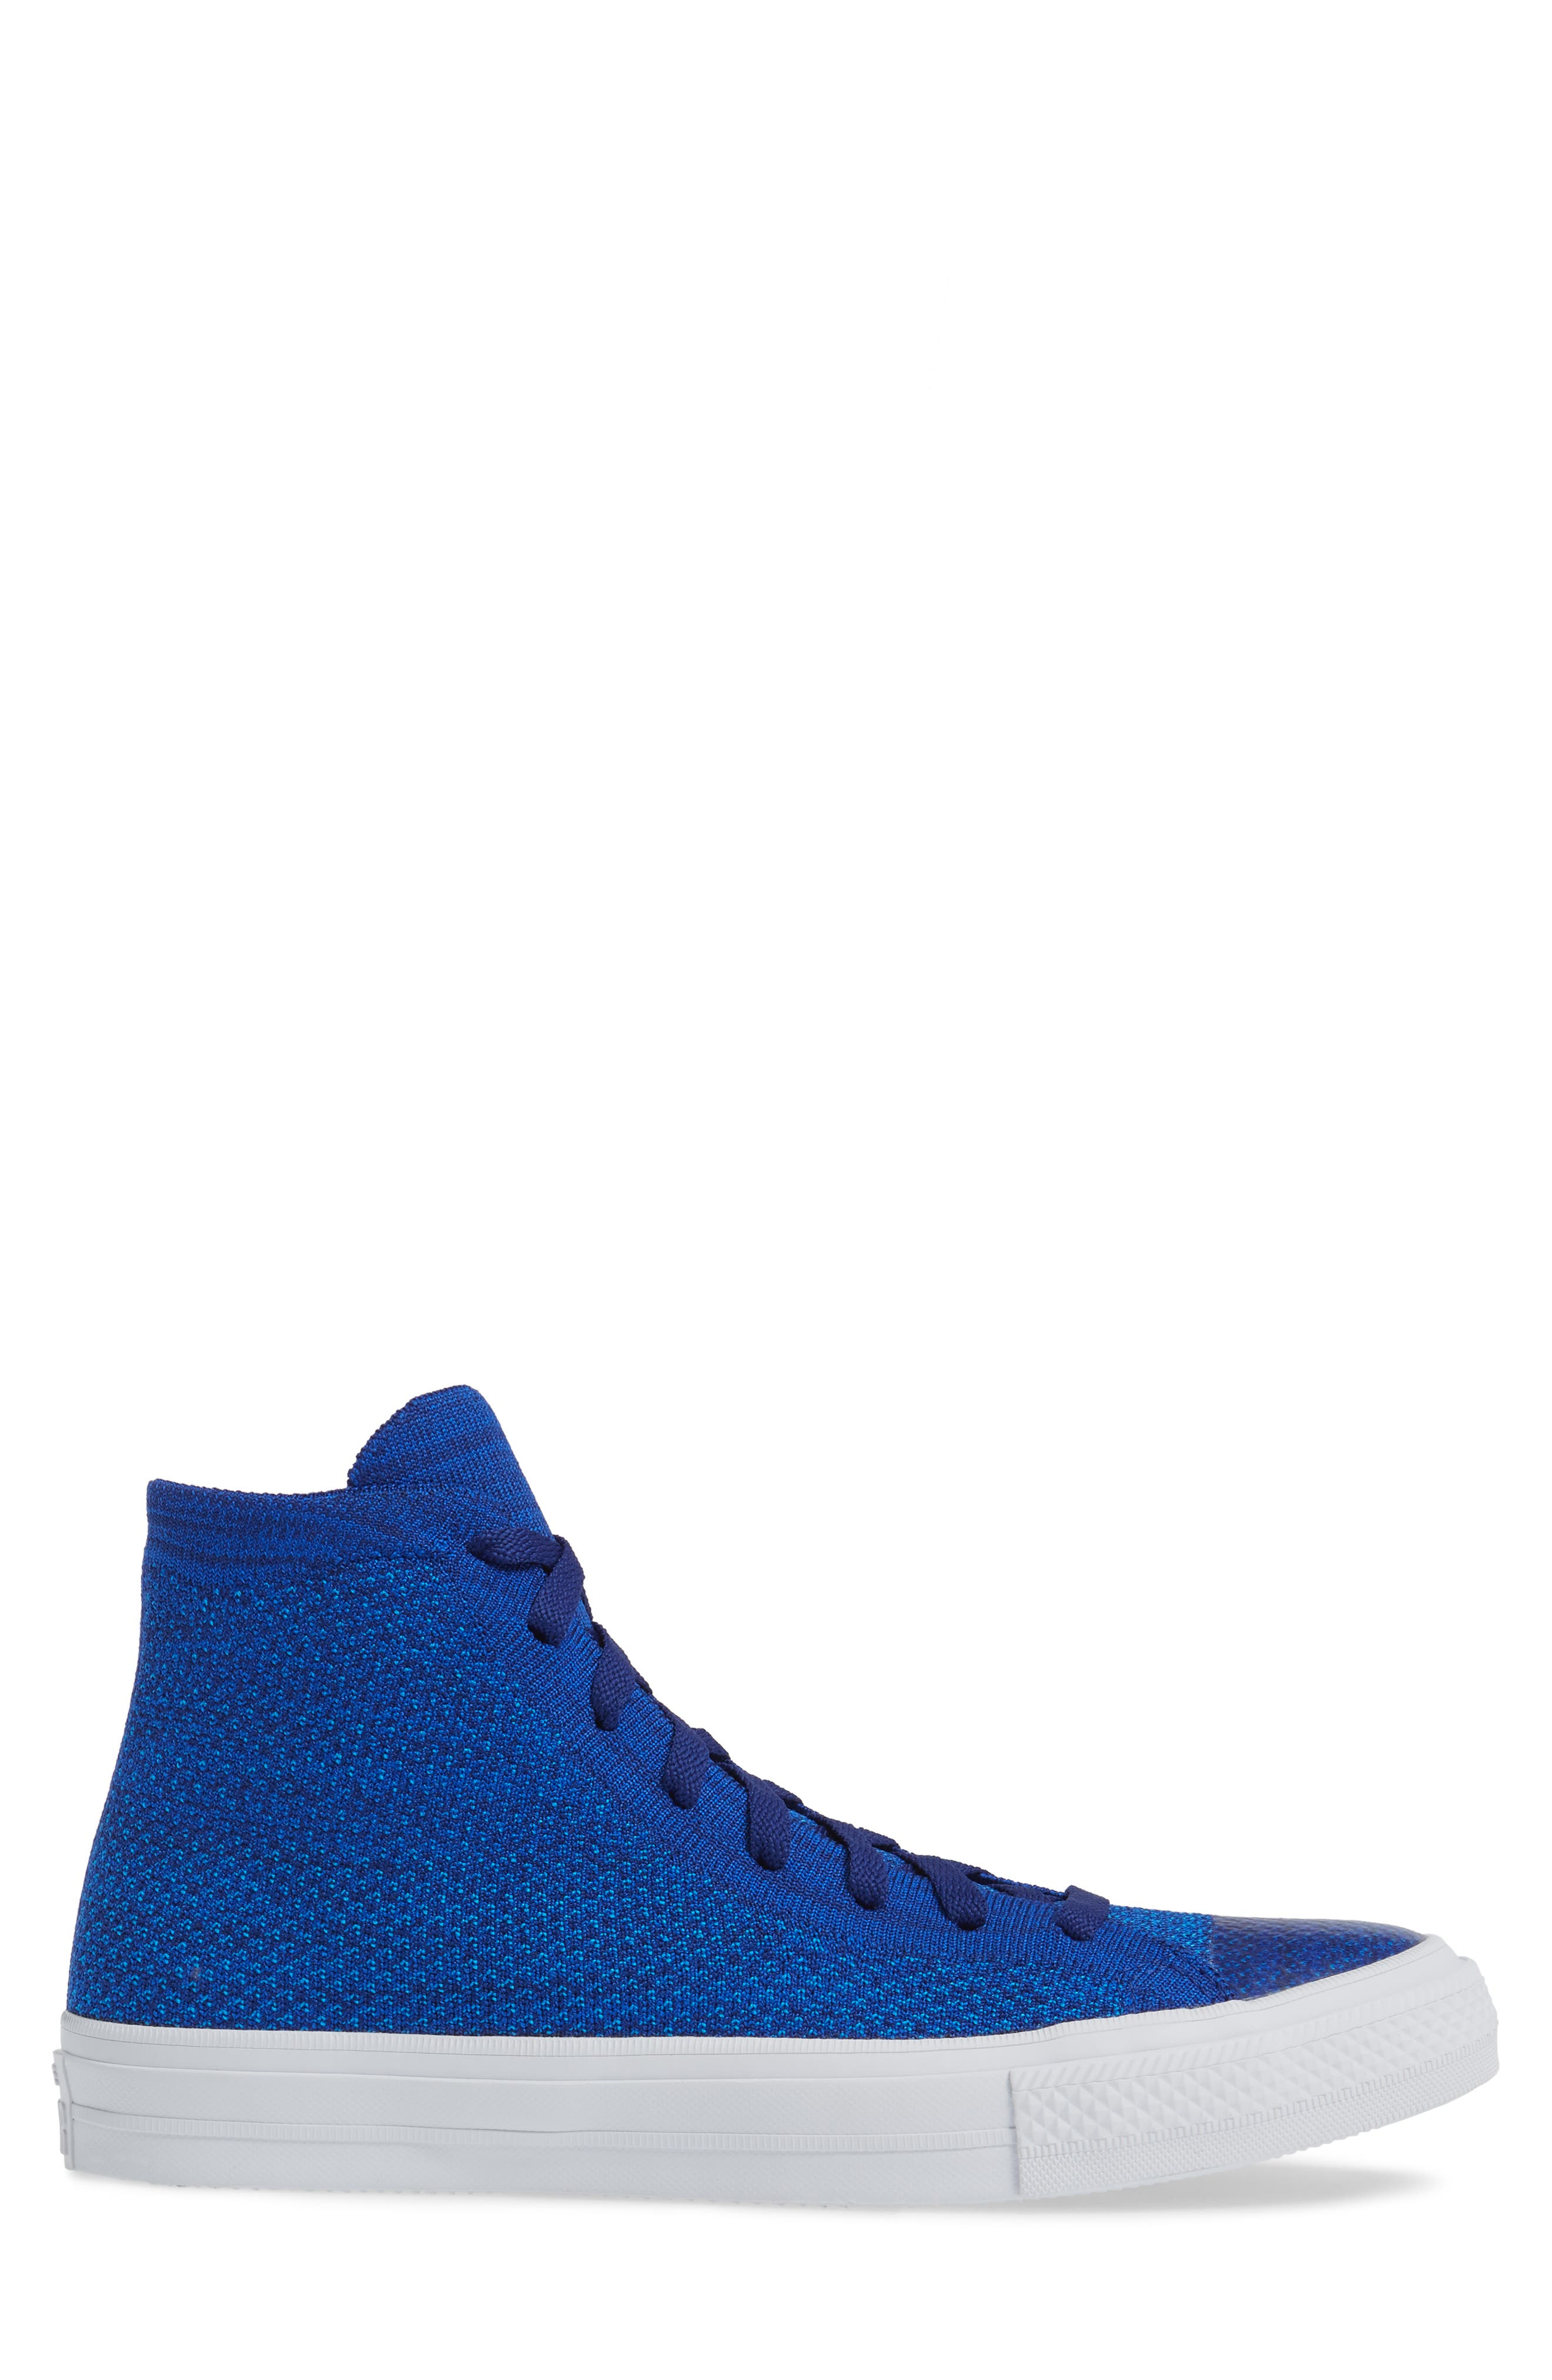 Chuck Taylor<sup>®</sup> All Star<sup>®</sup> Flyknit Hi Sneaker,                             Alternate thumbnail 17, color,